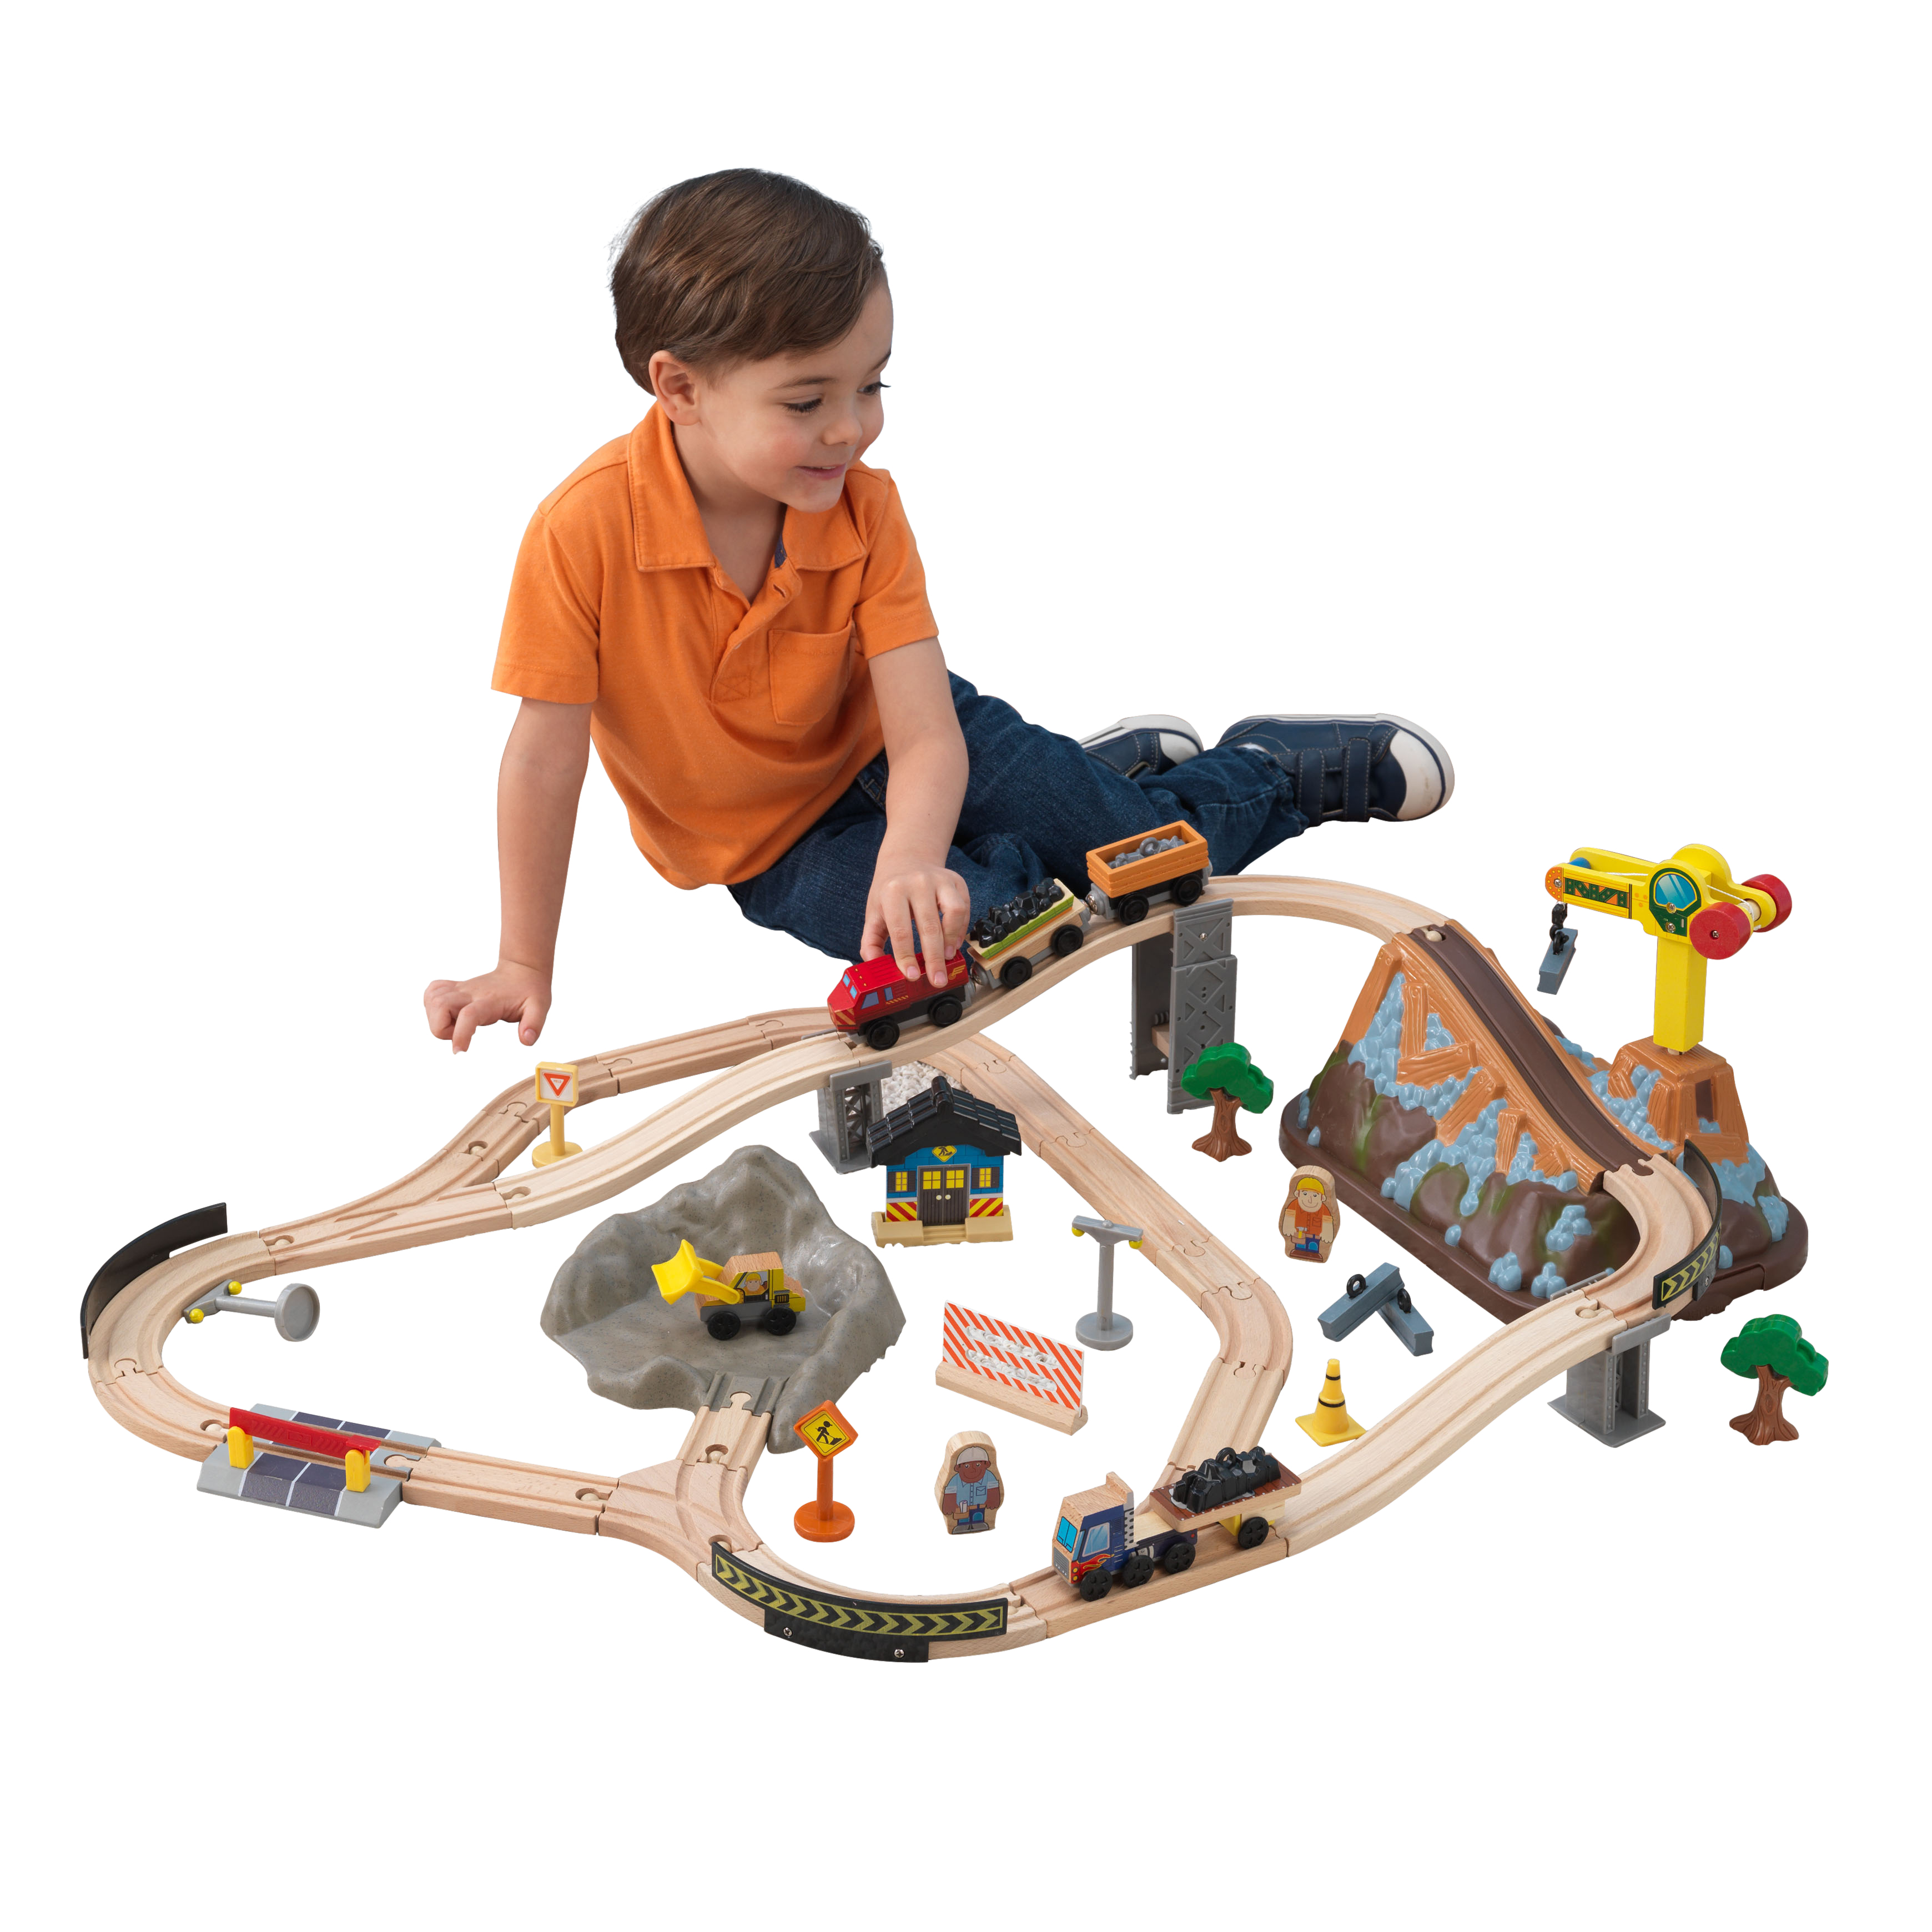 KidKraft Bucket Top Construction Train Set with 61 accessories included by KidKraft